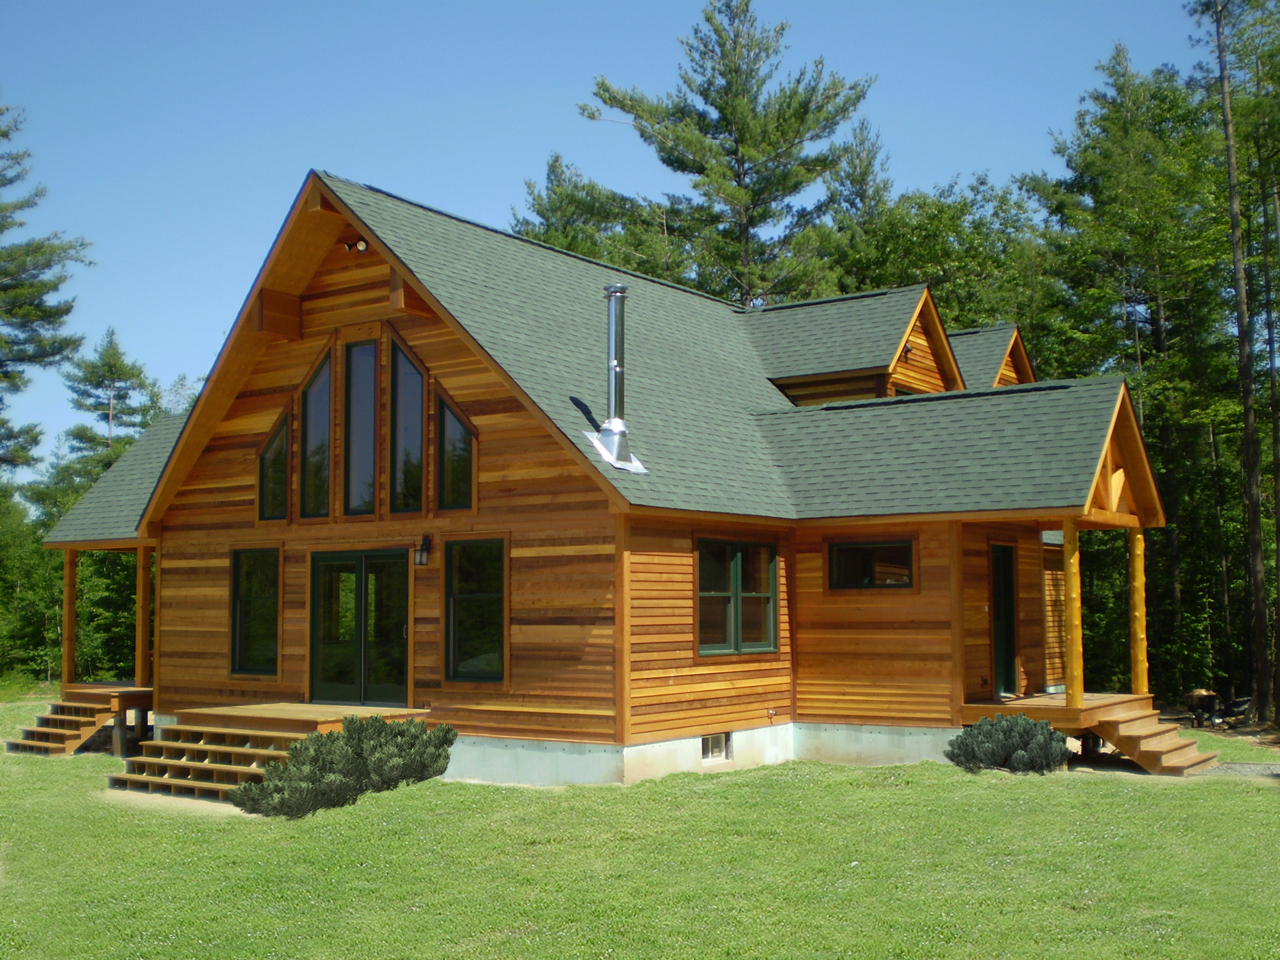 Saratoga Modular Homes | Custom Modular Homes – Upstate NY